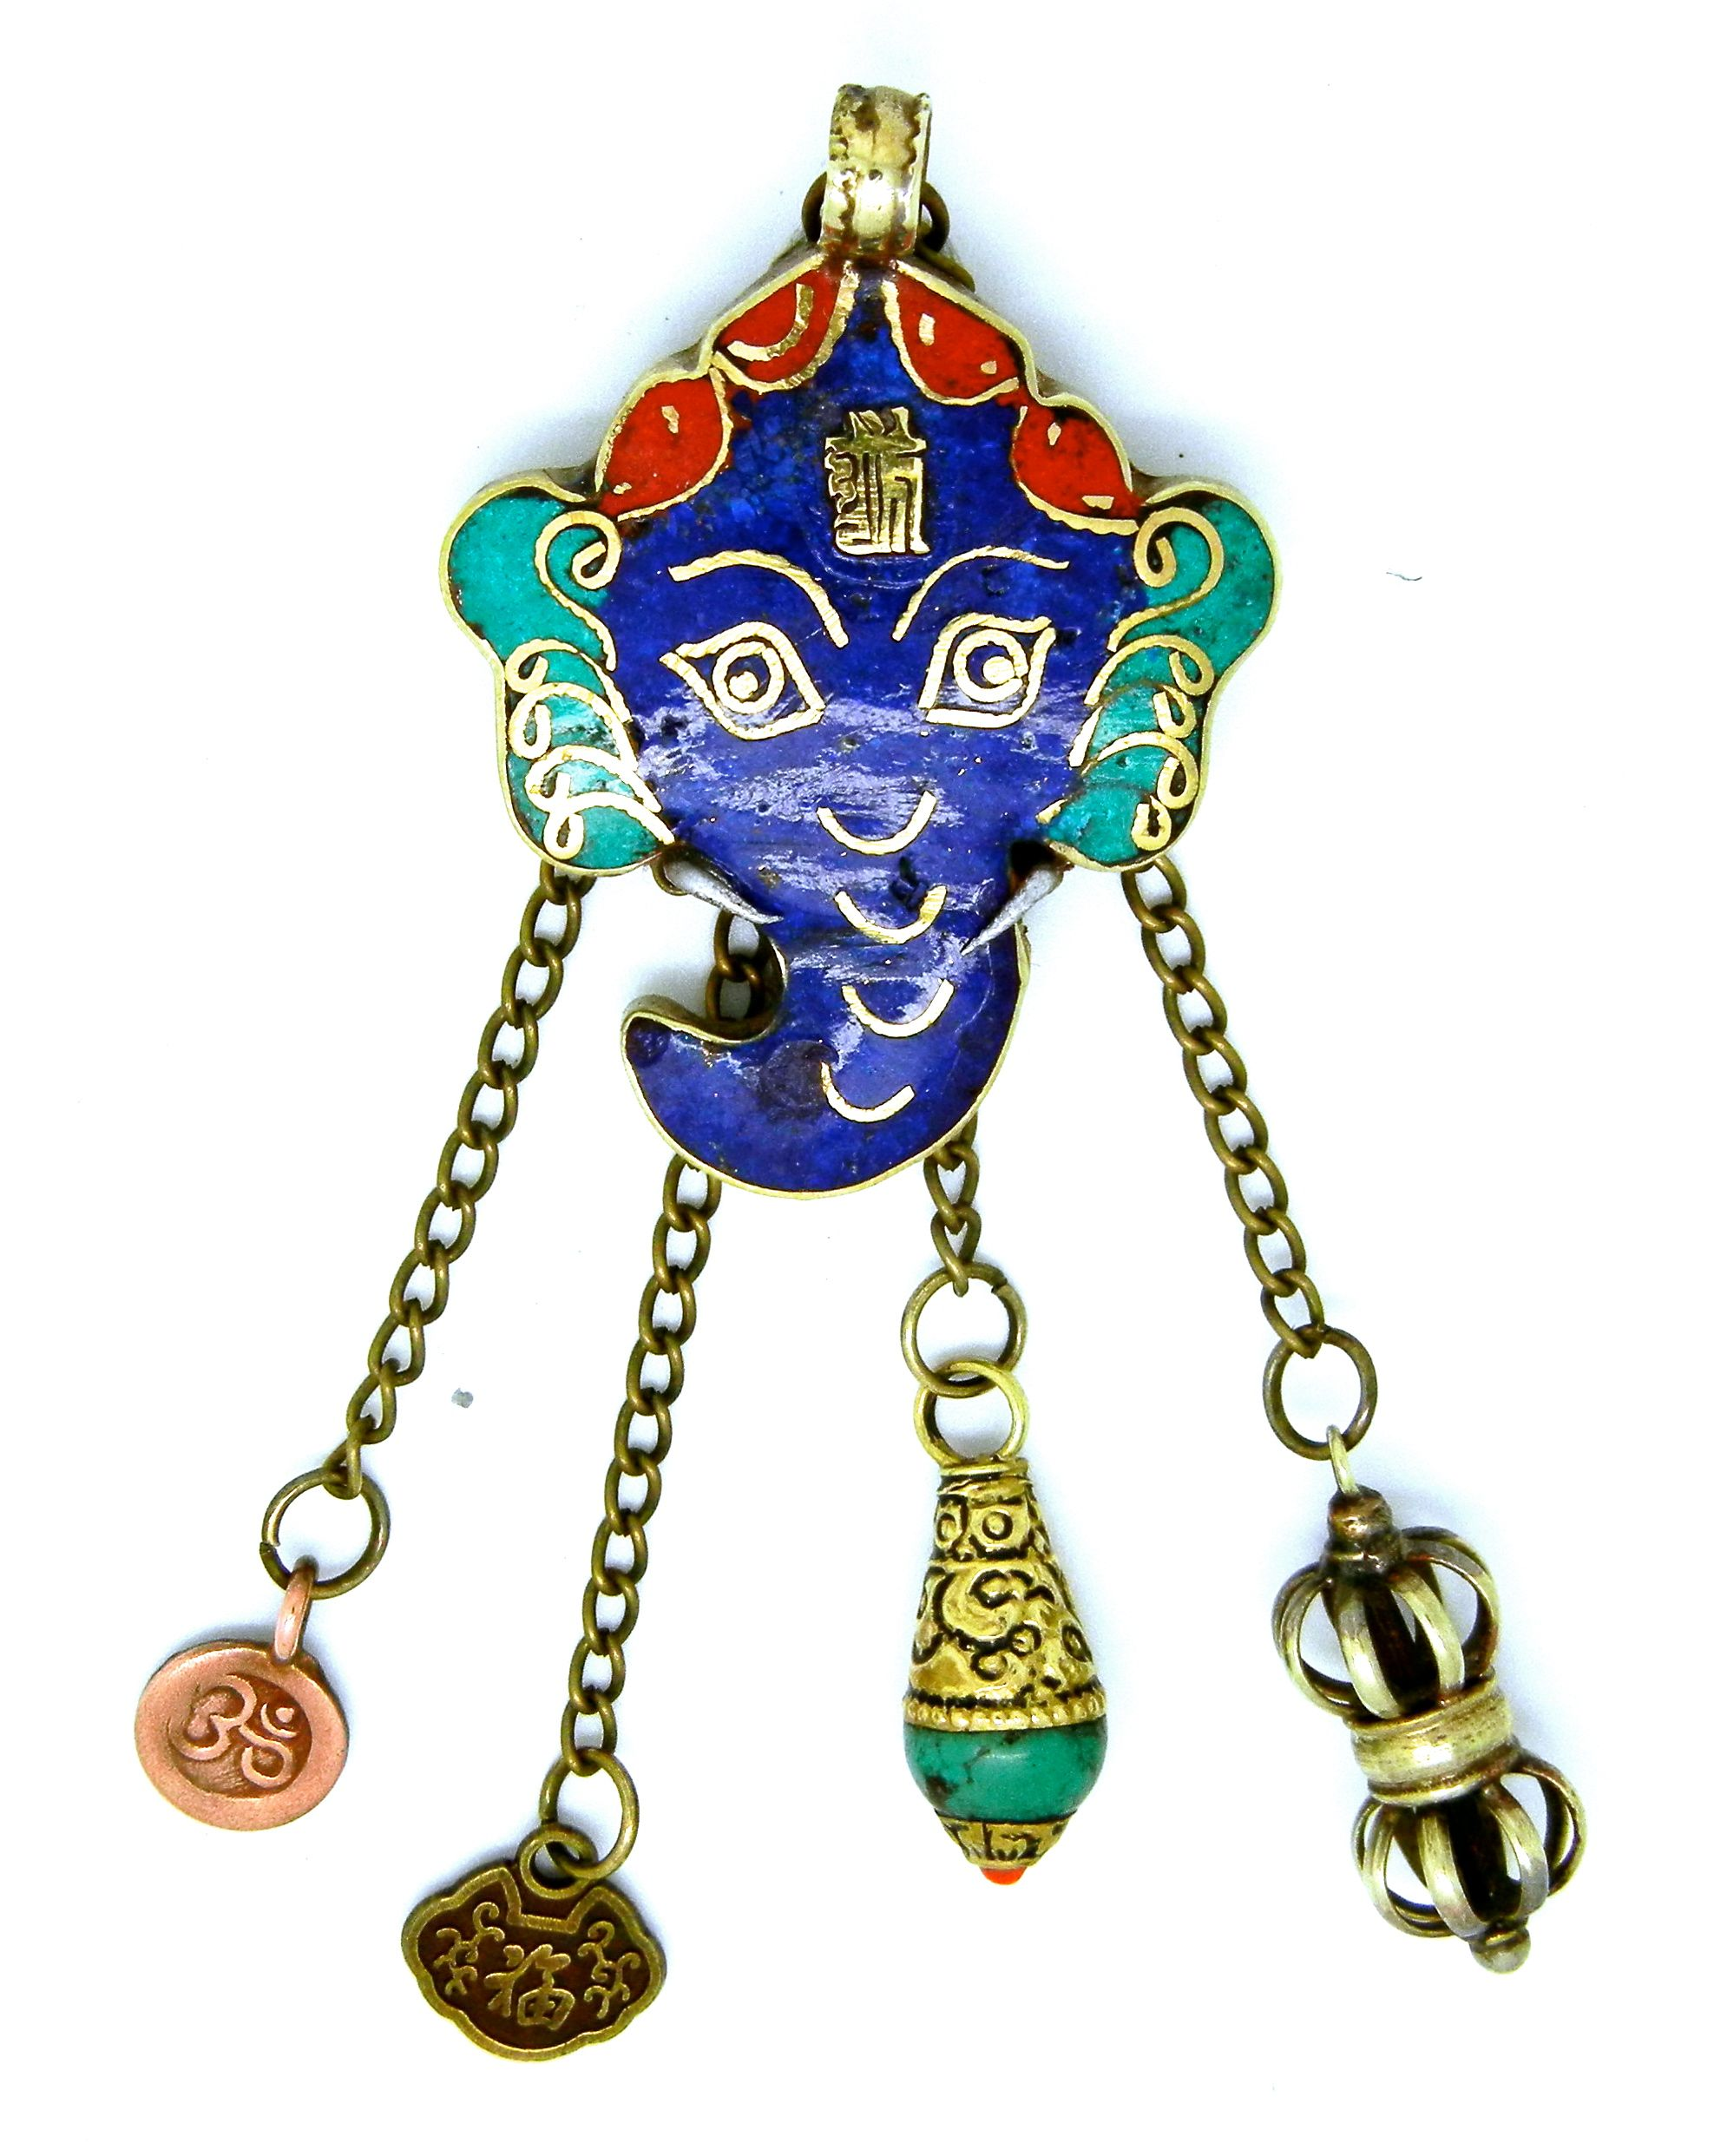 Nepalese Ganesh Pendant with a Copper Om Charm, a Brass Chinese Coin, Tibetan Turquiose Charm and a Nepalese Dorje Charm. Price: $35.00